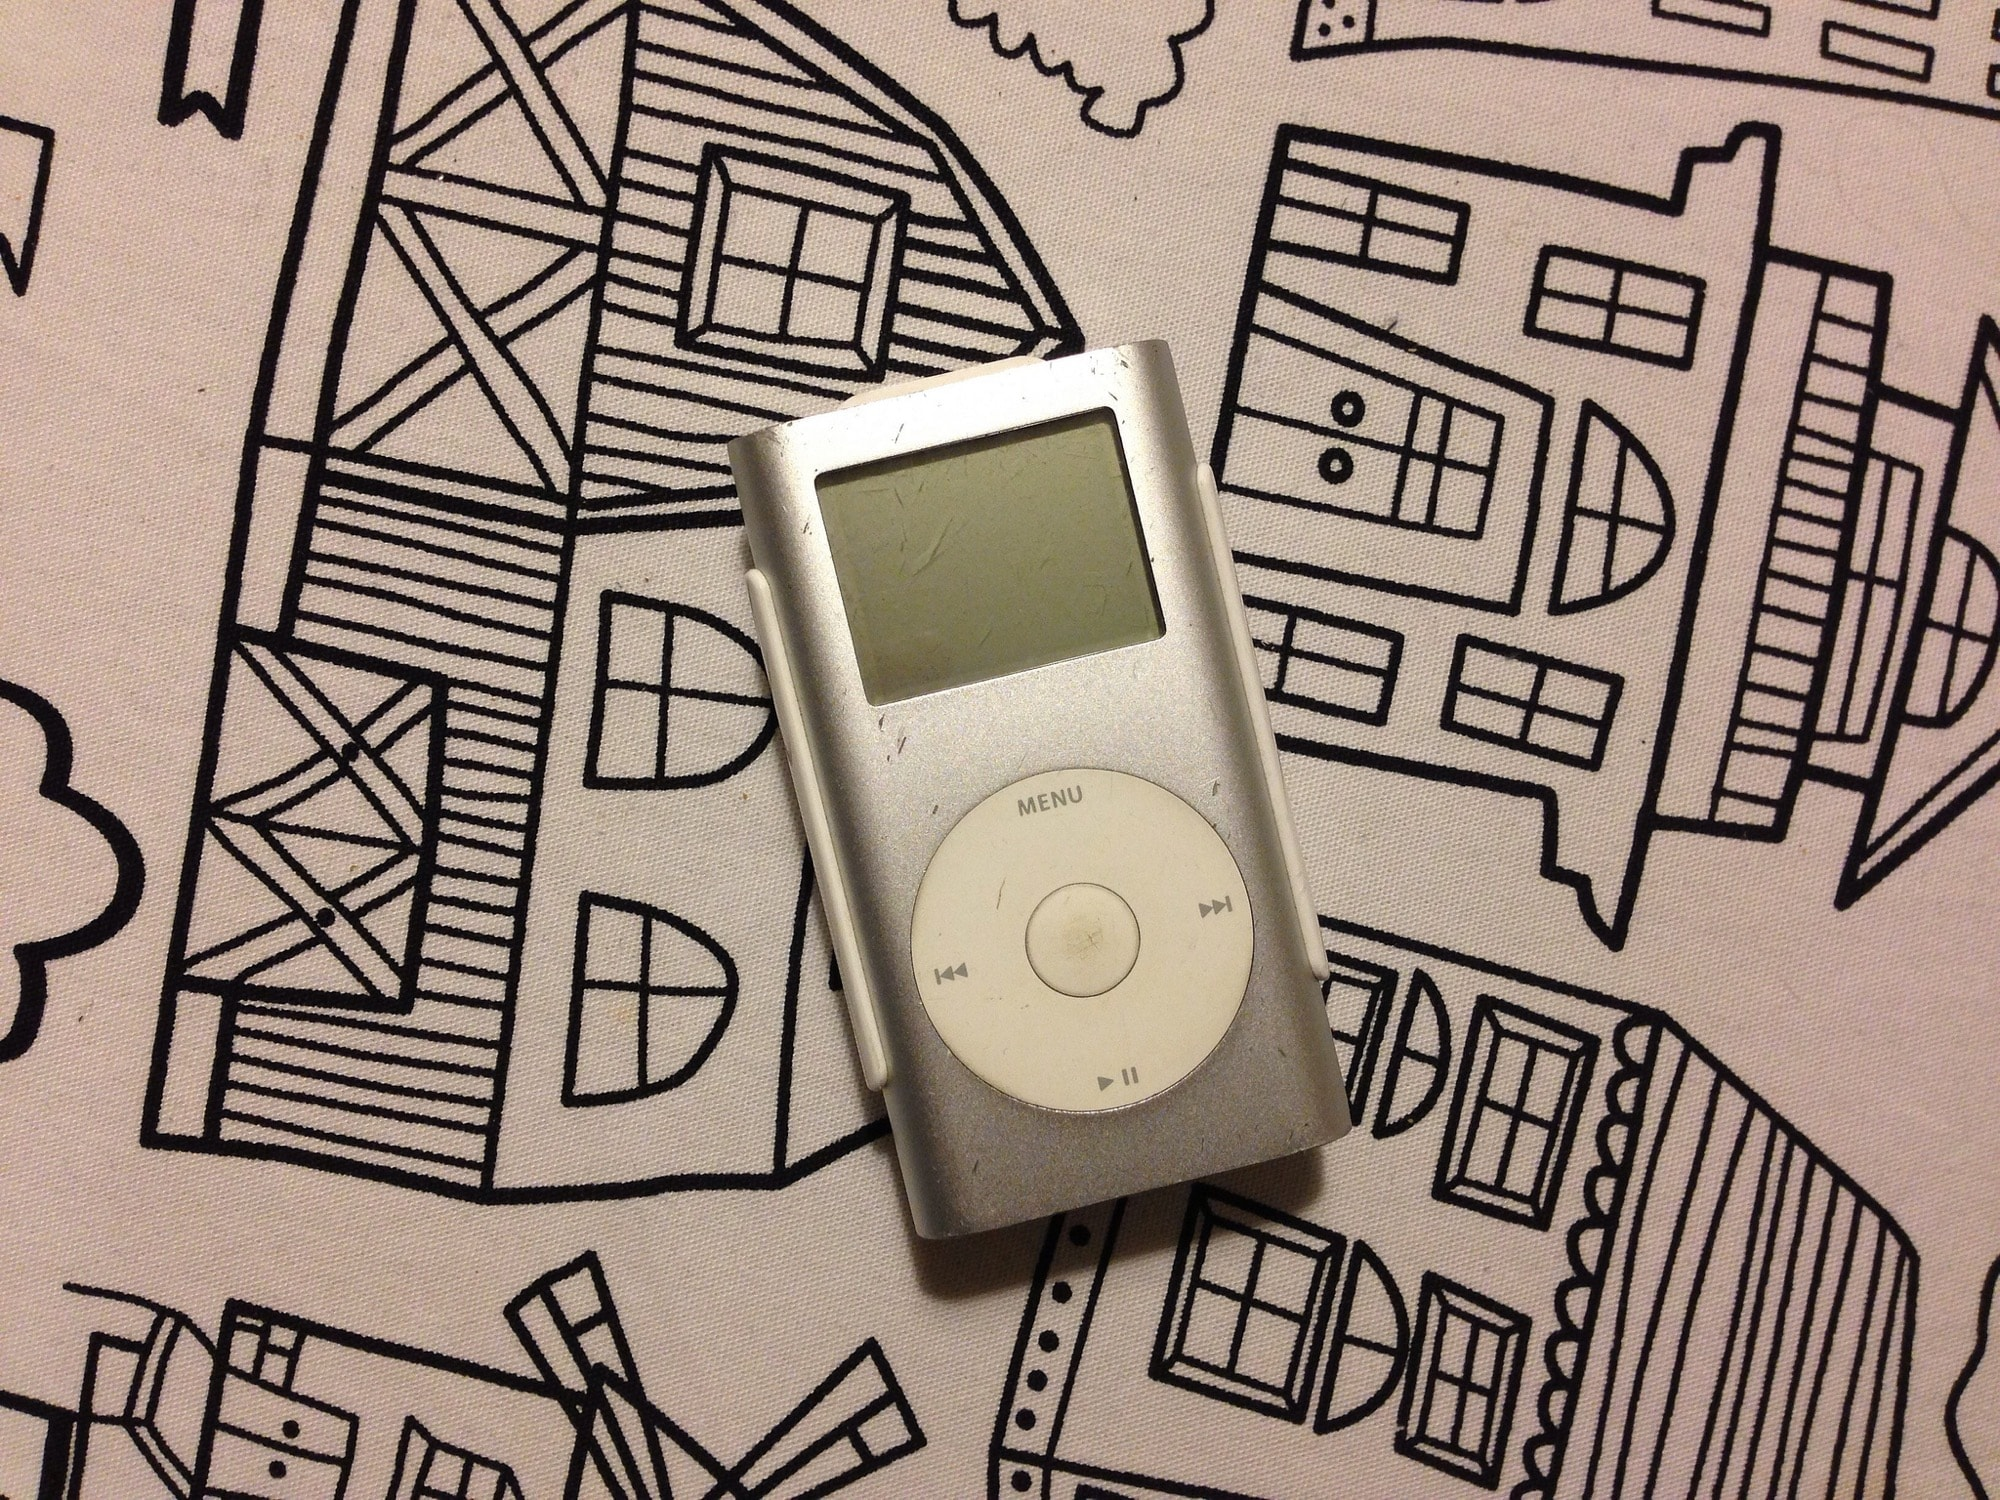 The iPod mini came in lots of colors. Not this one, though.